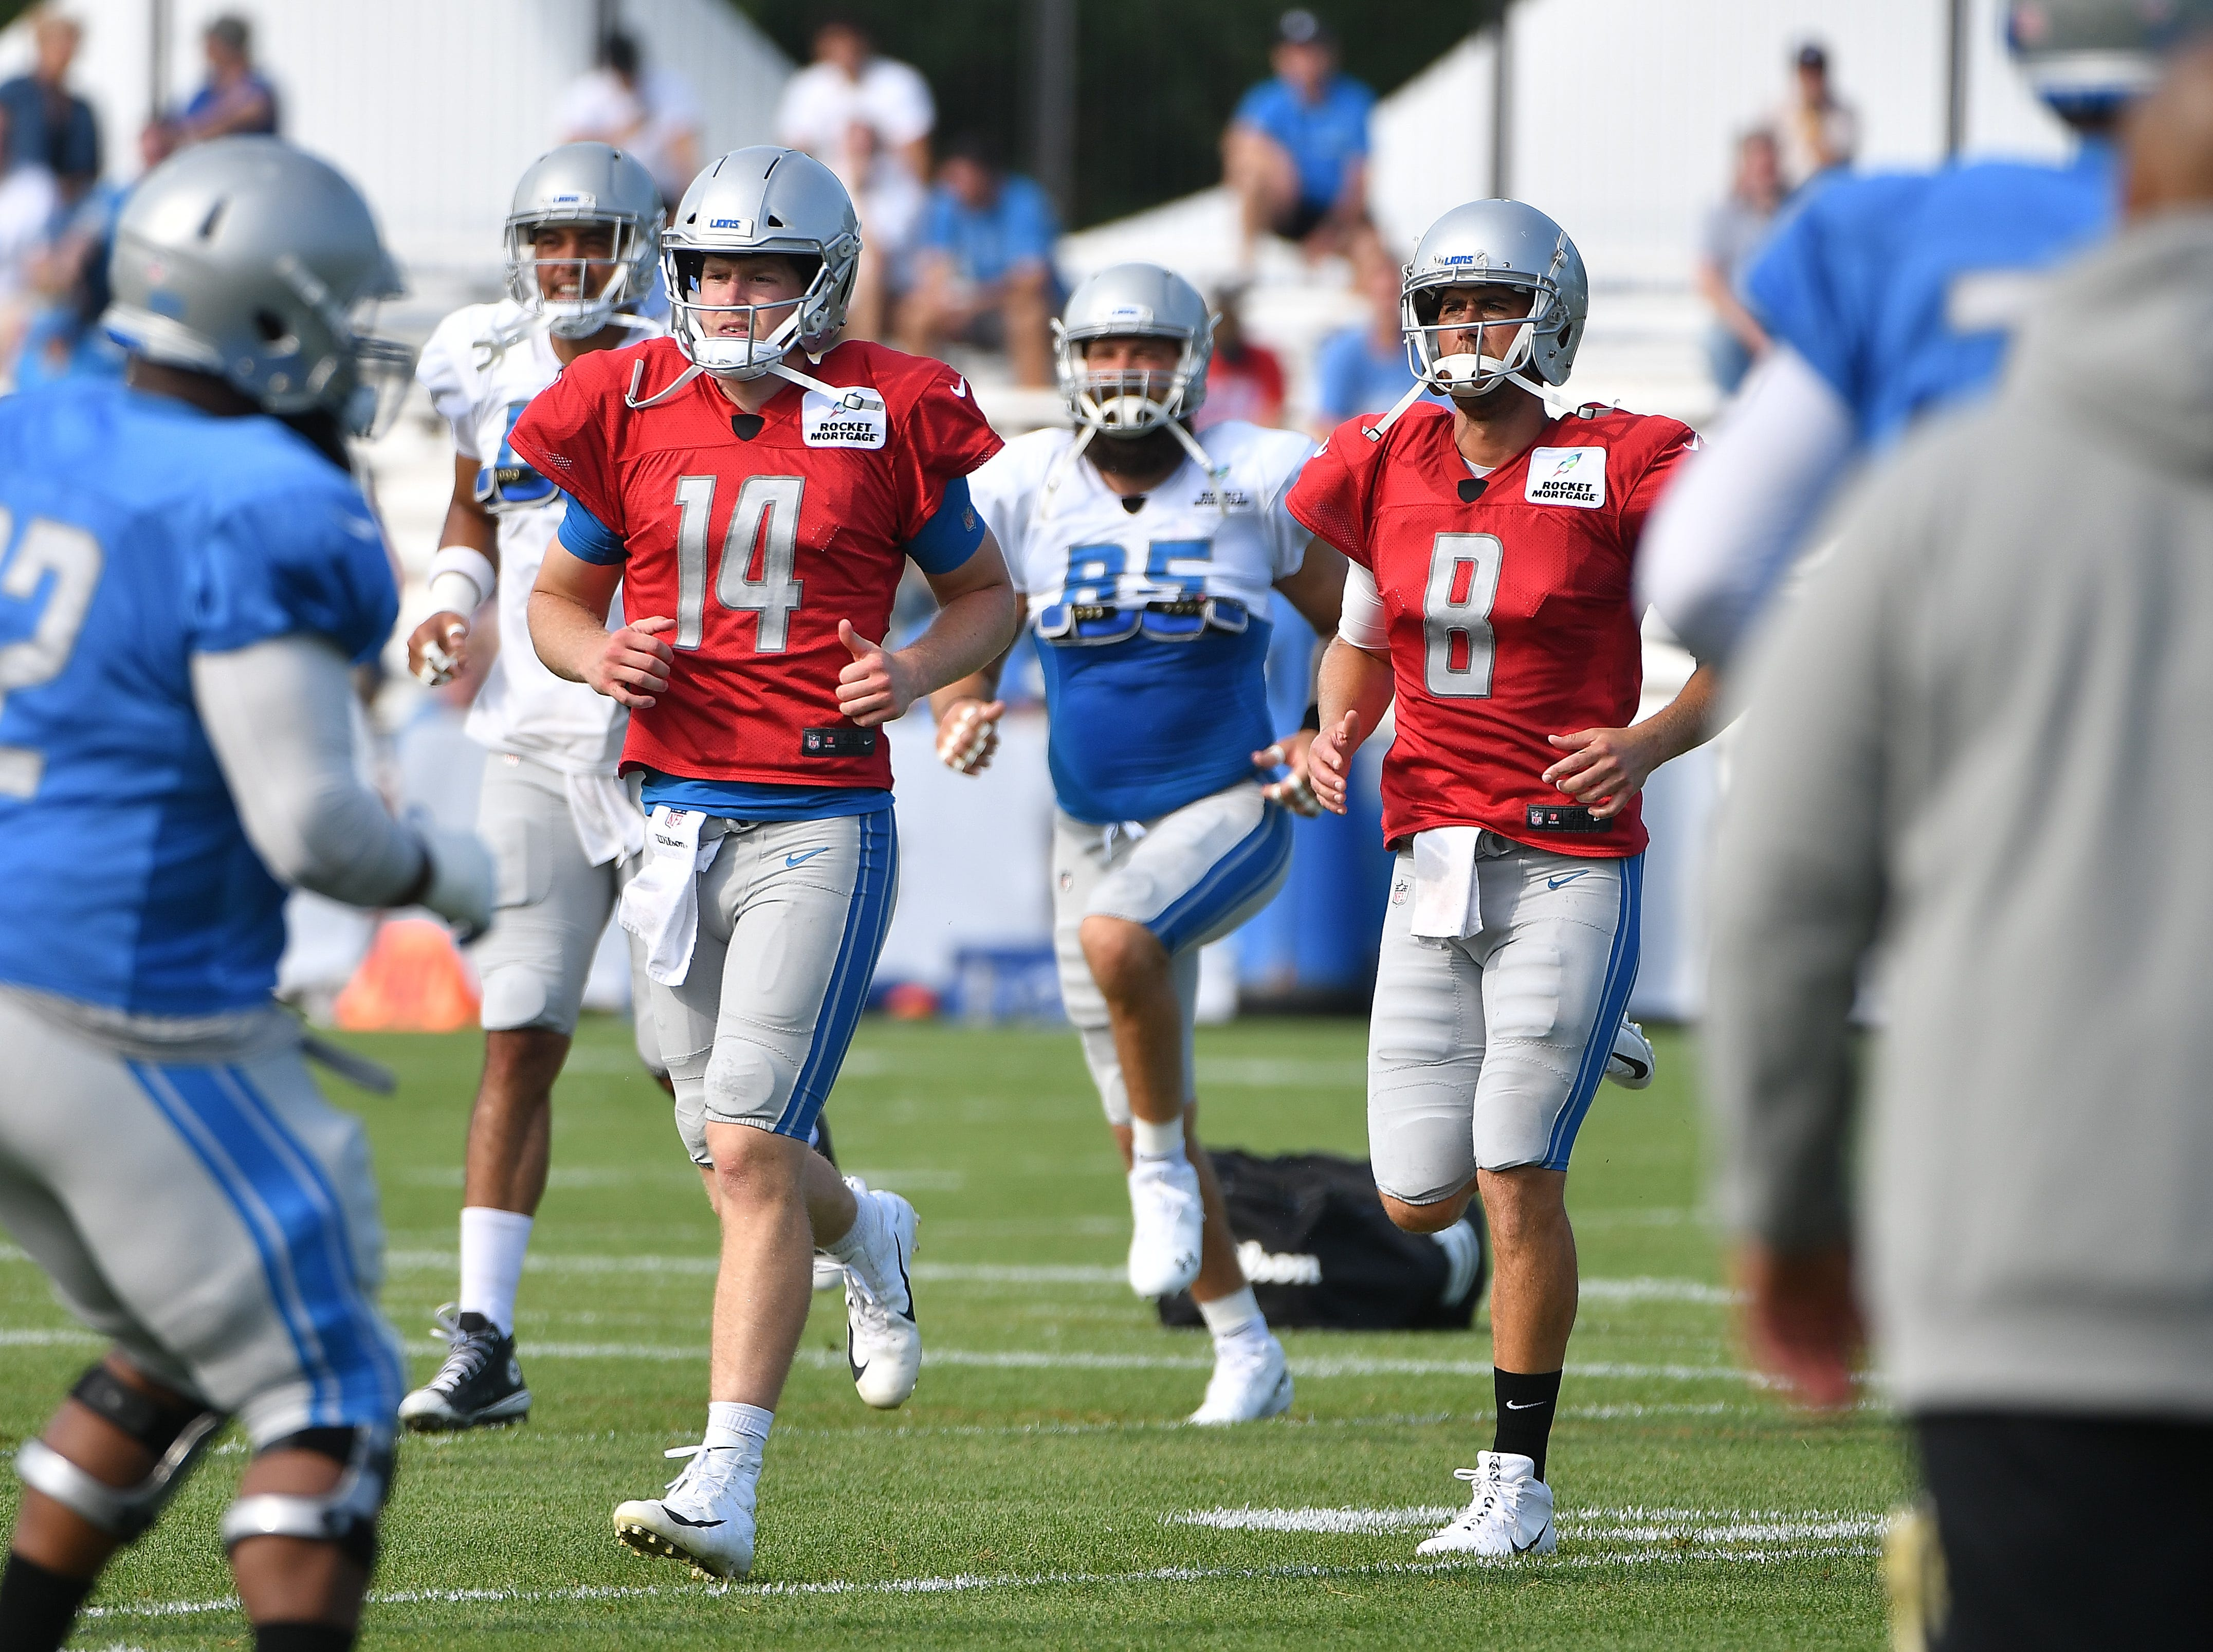 Lions quarterbacks Jake Rudock and Matt Cassel warm up on the field at the start of practice.